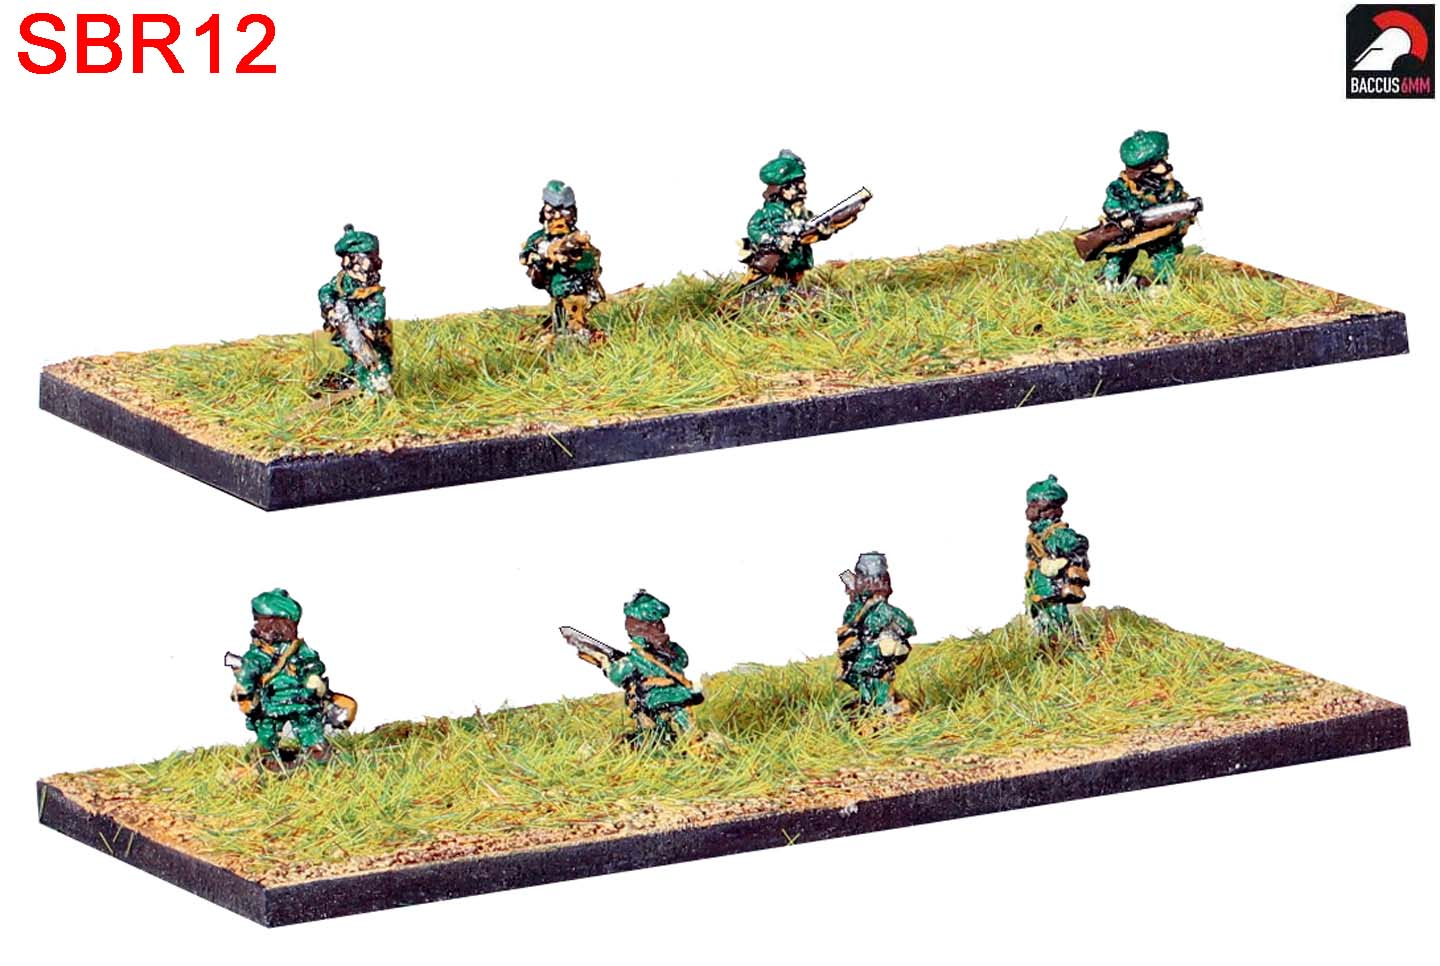 SBR12 - Rangers advancing